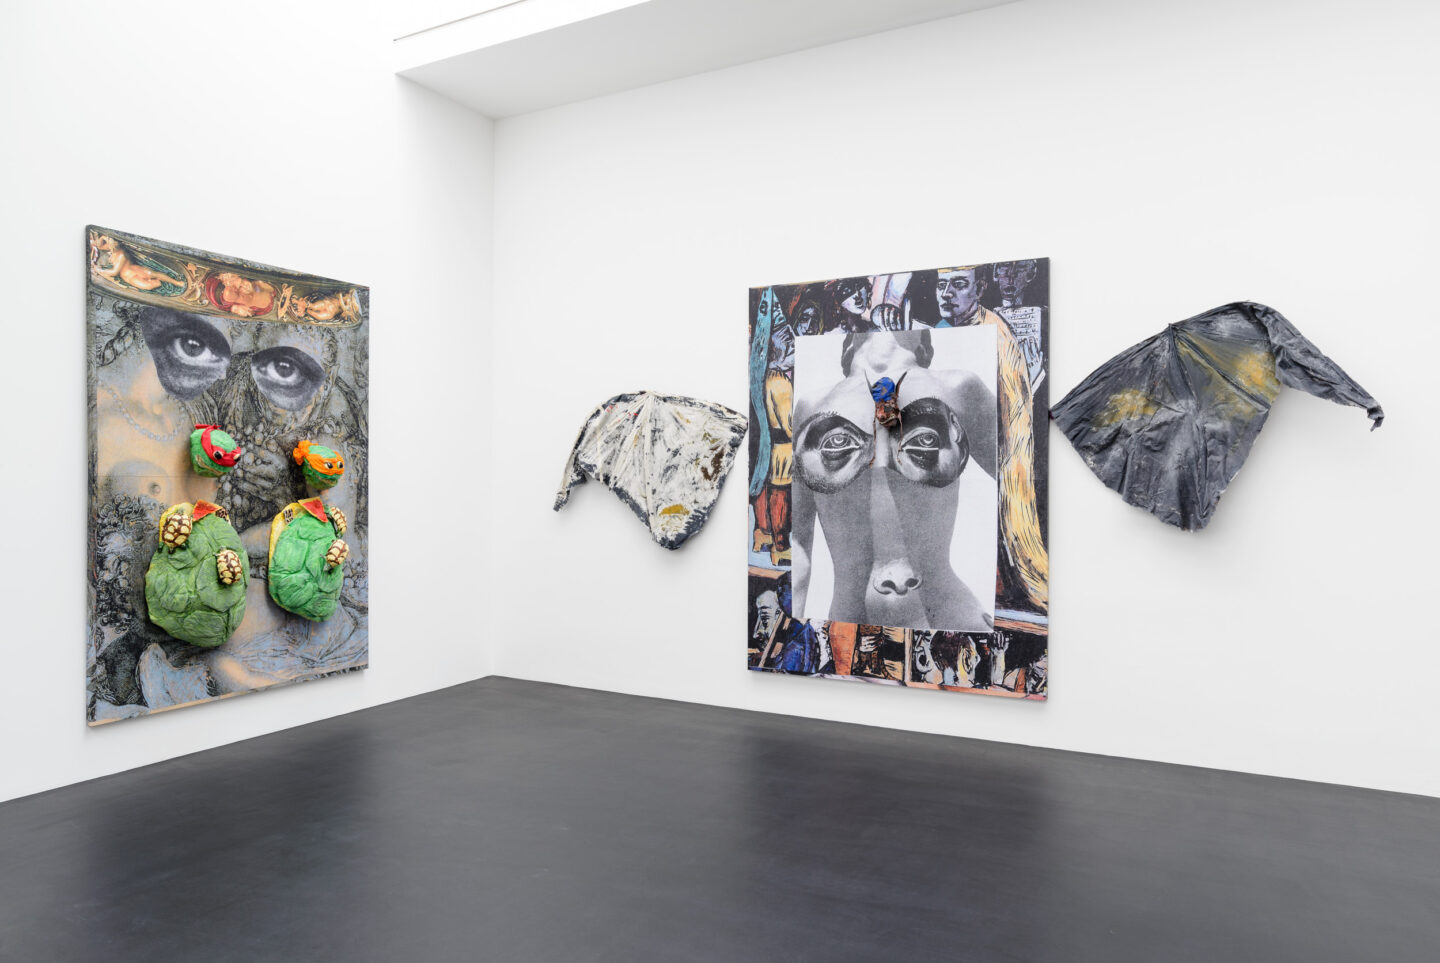 Exhibition View Monster Chetwynd Soloshow «Either This Coat's Inhabited or I'm Inhibited; Ninja Turtles, 2019 and Where is God (the Bat), 2019» at Galerie Gregor Staiger / Courtesy: the artist and Galerie Gregor Staiger